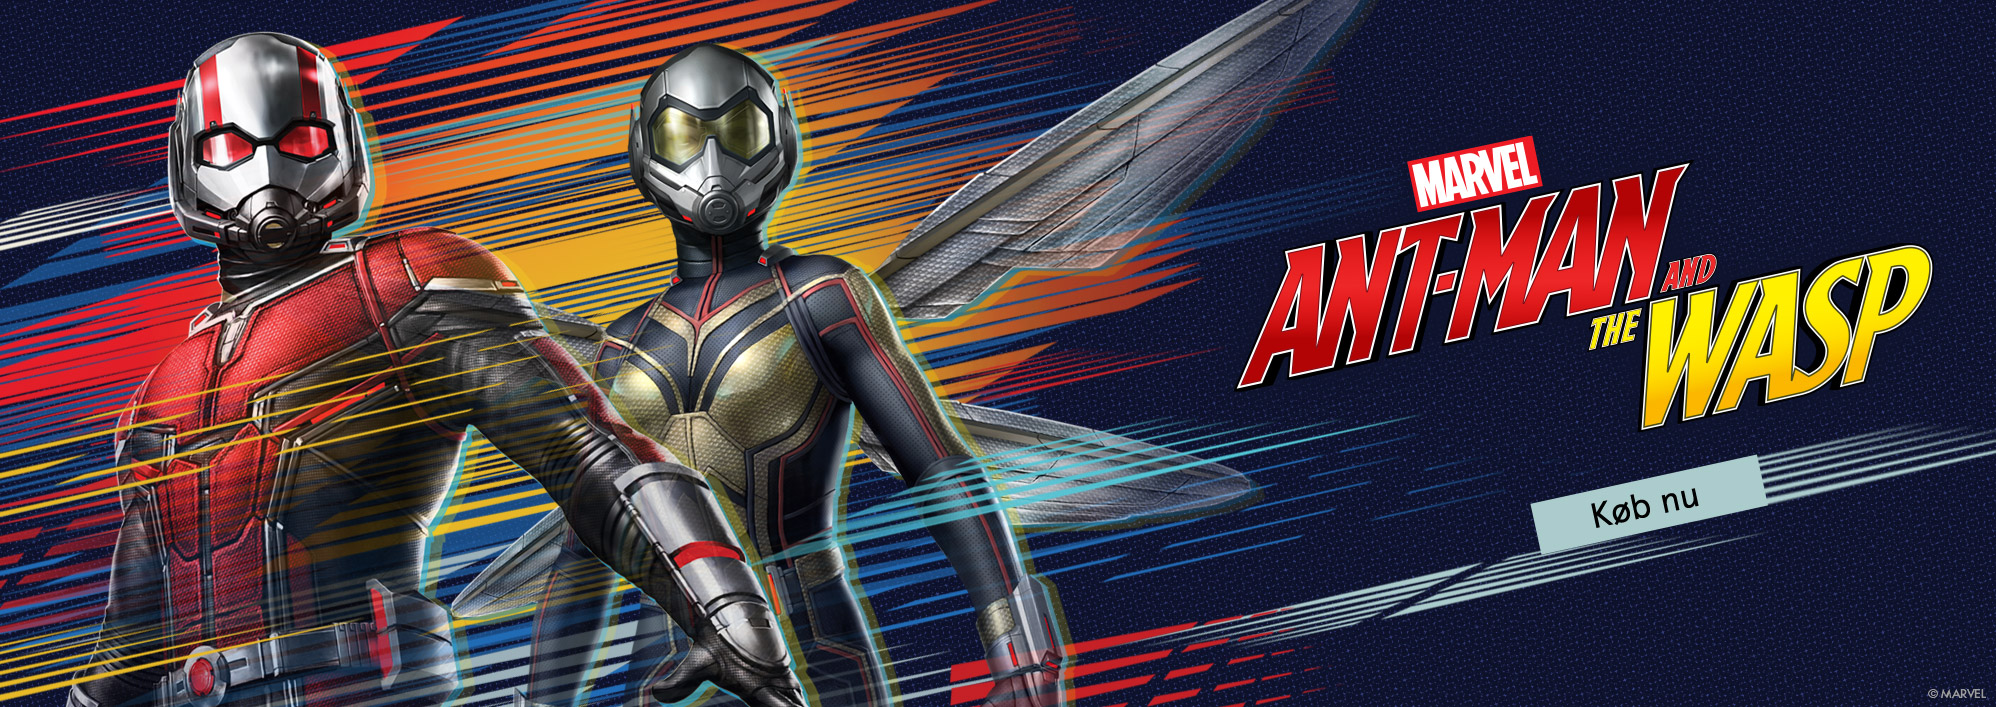 Marvel. Ant-Man and the Wasp. Køb nu.